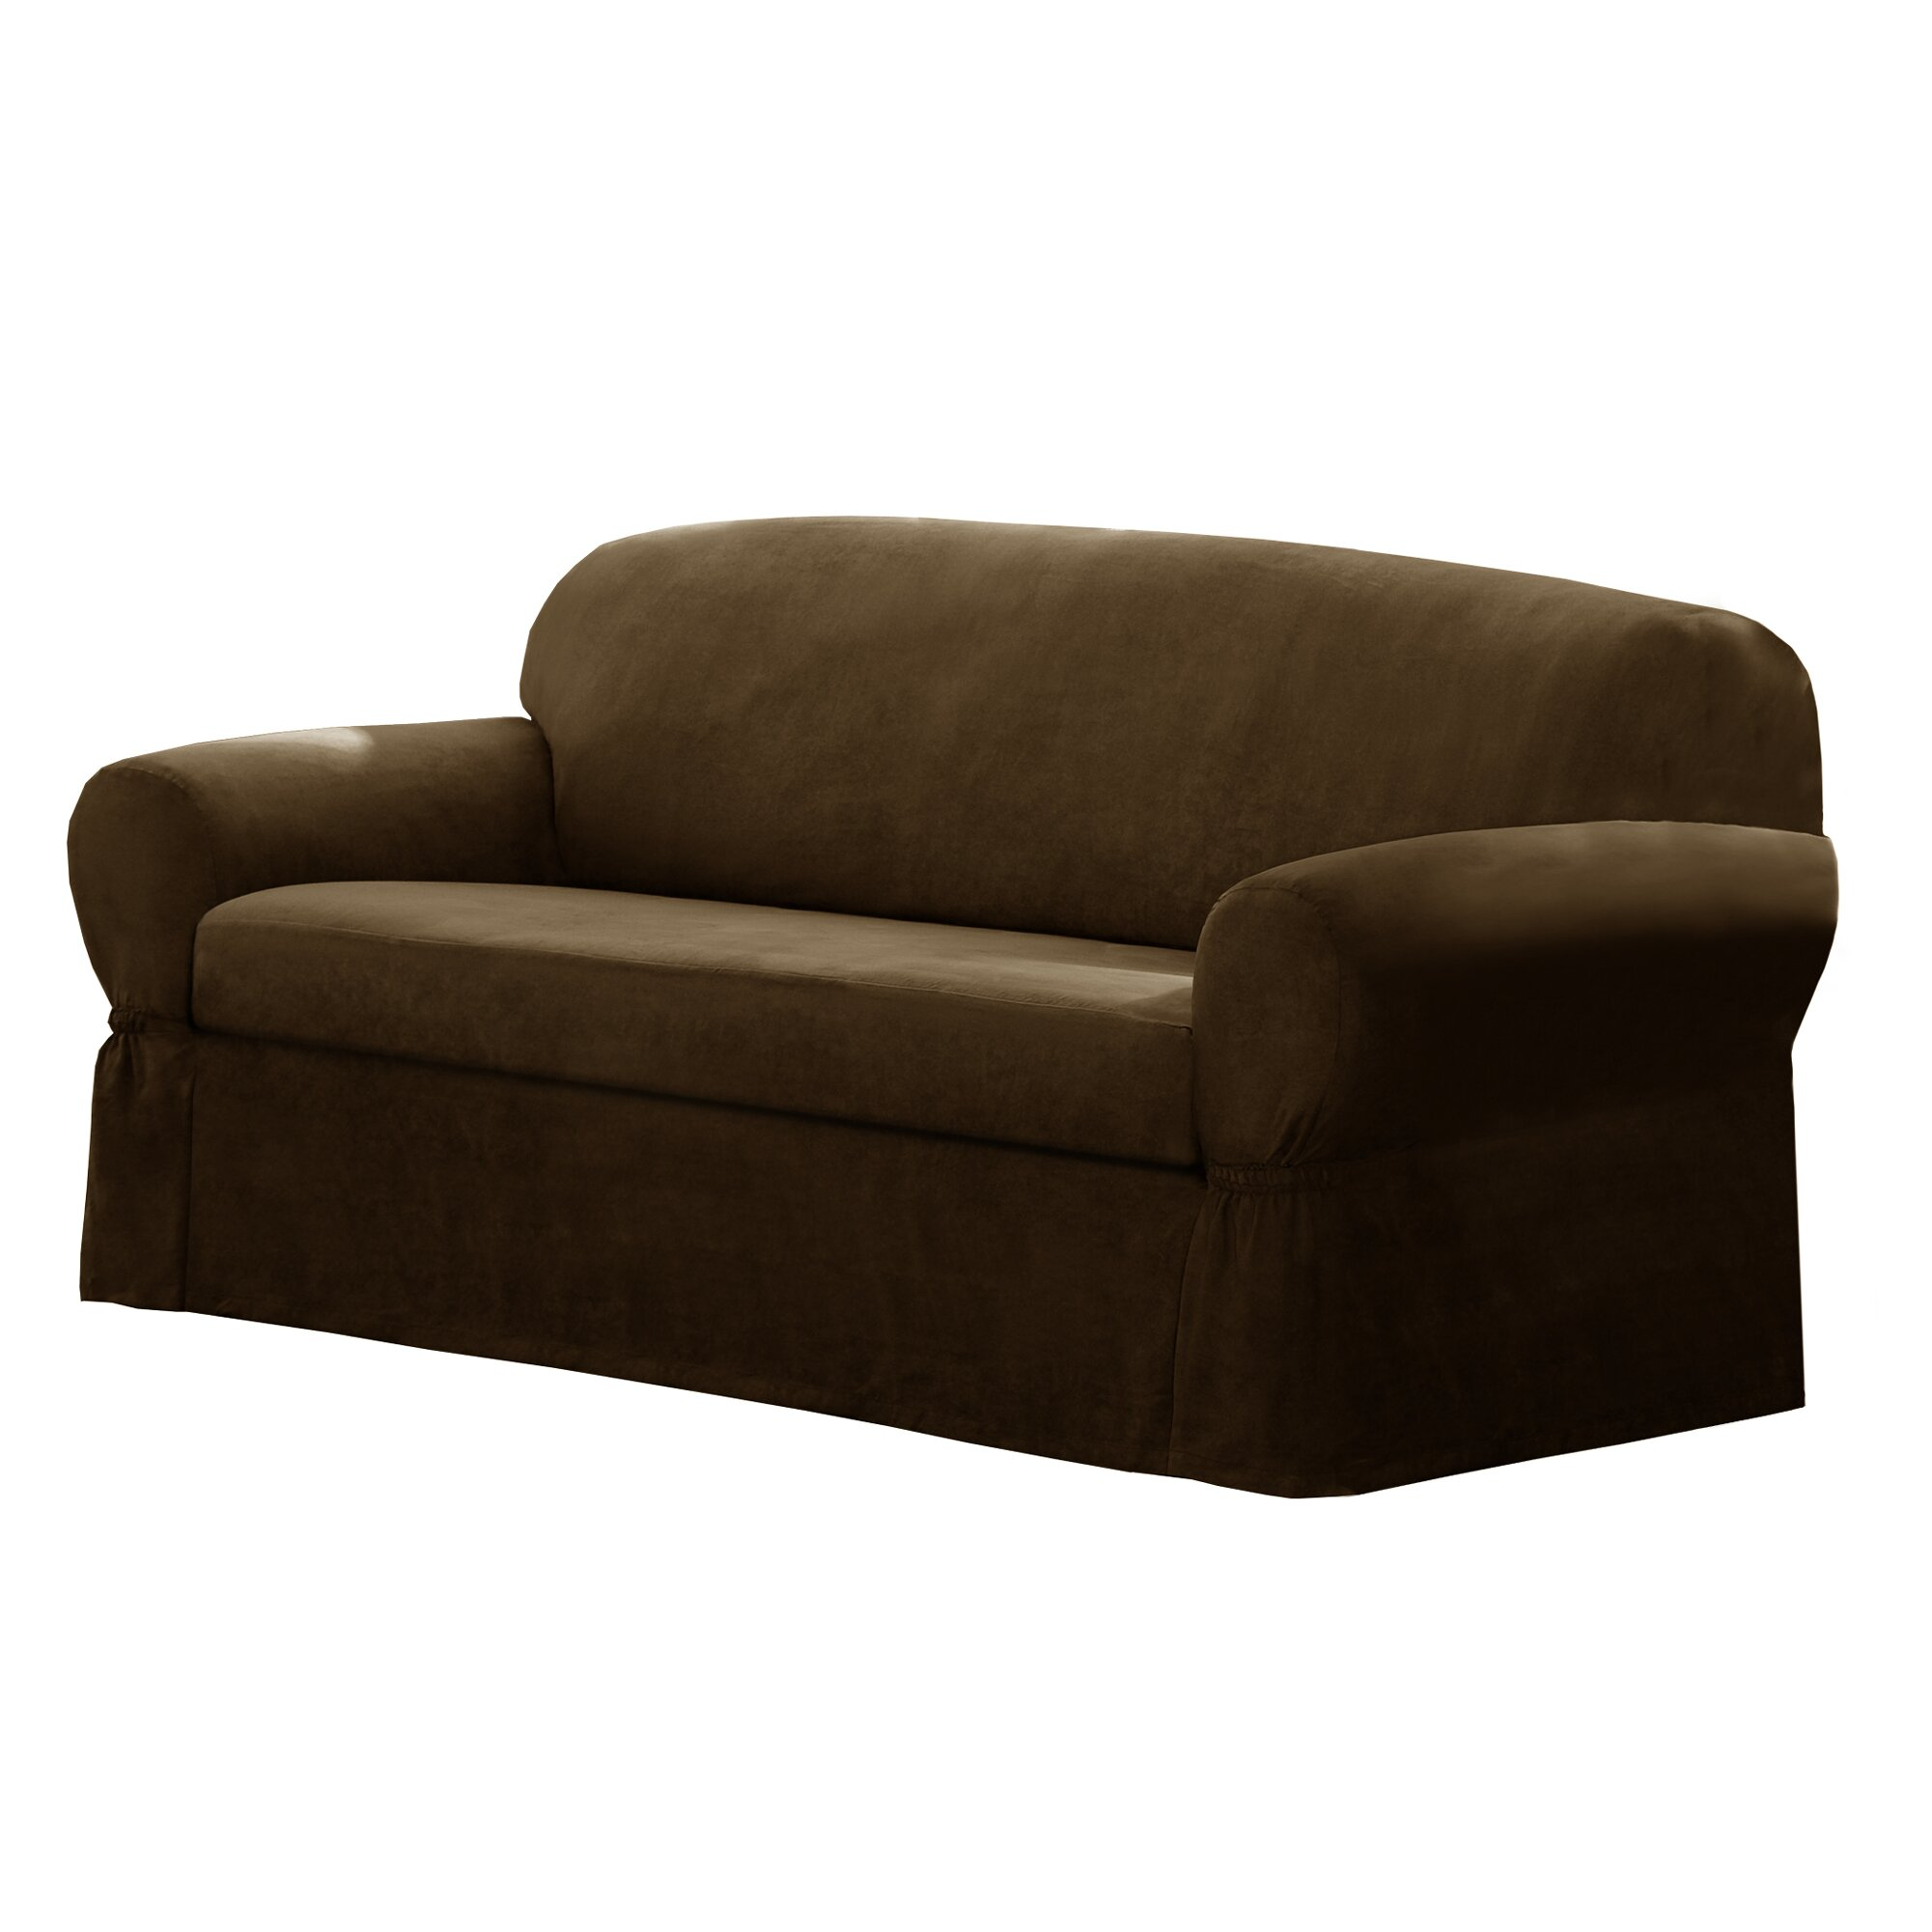 Maytex T-Cushion Loveseat/Sofa Slipcover & Reviews | Wayfair